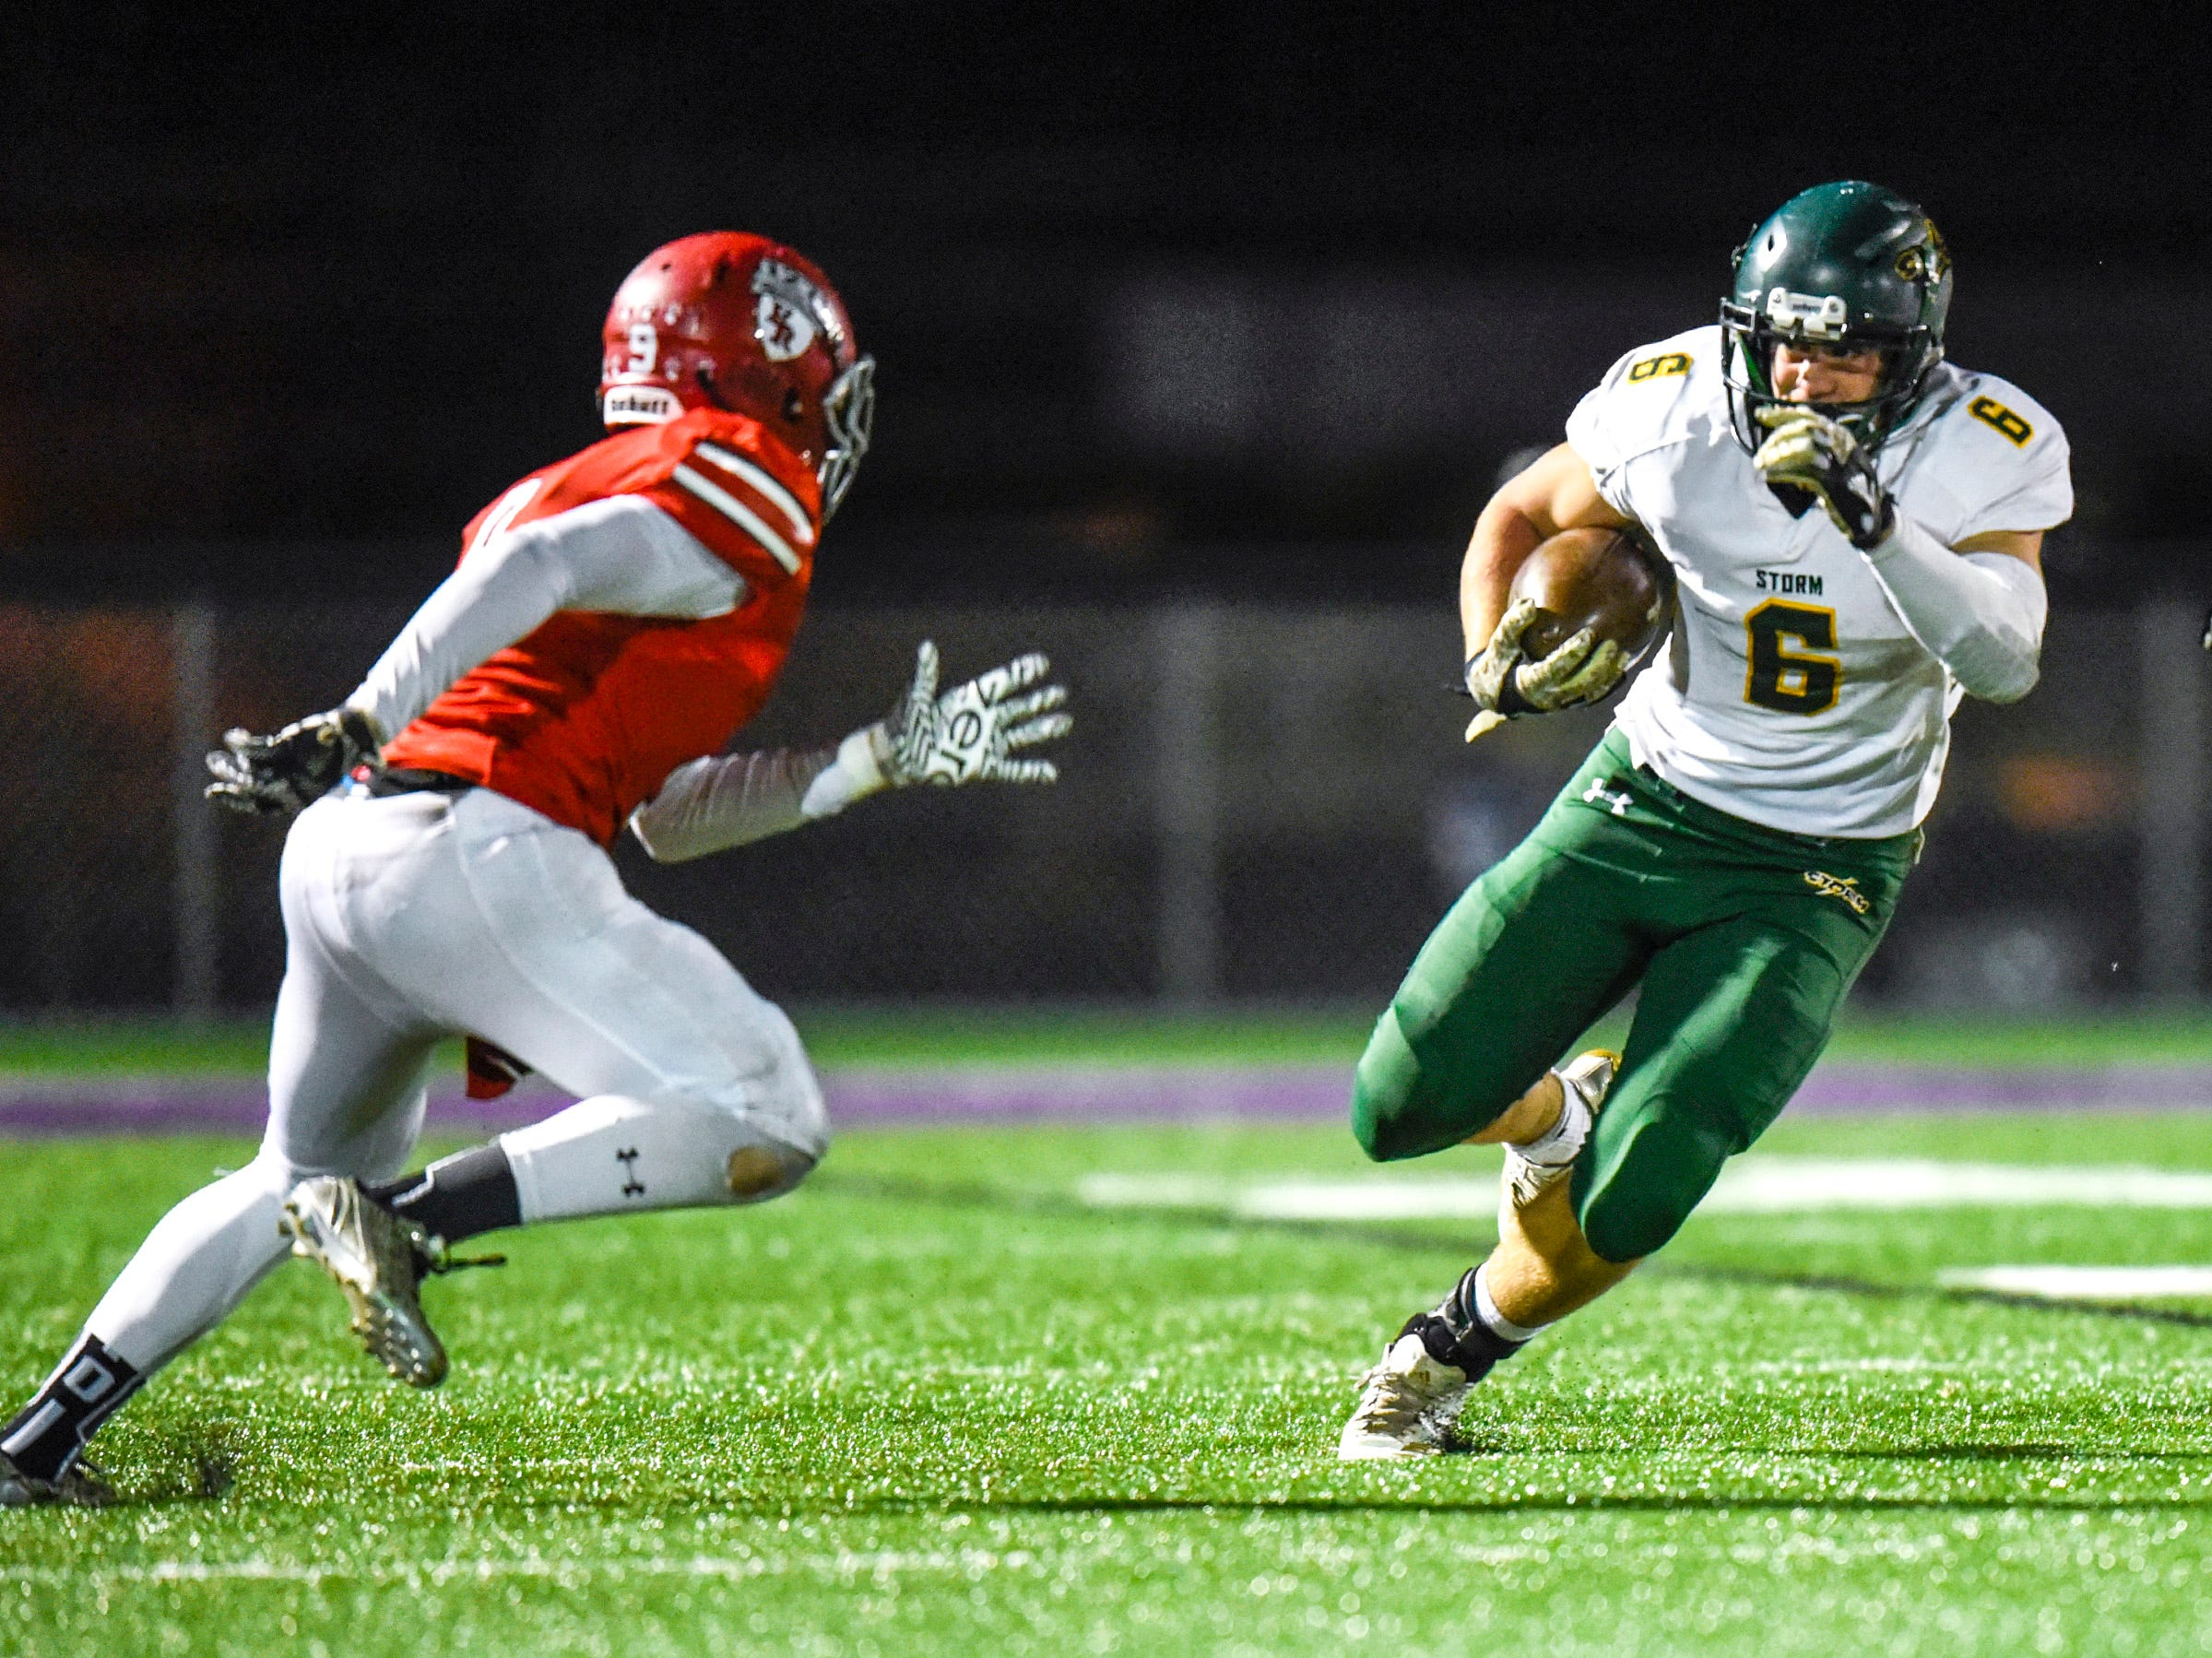 Sauk Rapids running back J.D. Bates tries to outrun the Elk River defense during the first half Friday, Nov. 2, in the Section 6-5A championship at Buffalo High School.